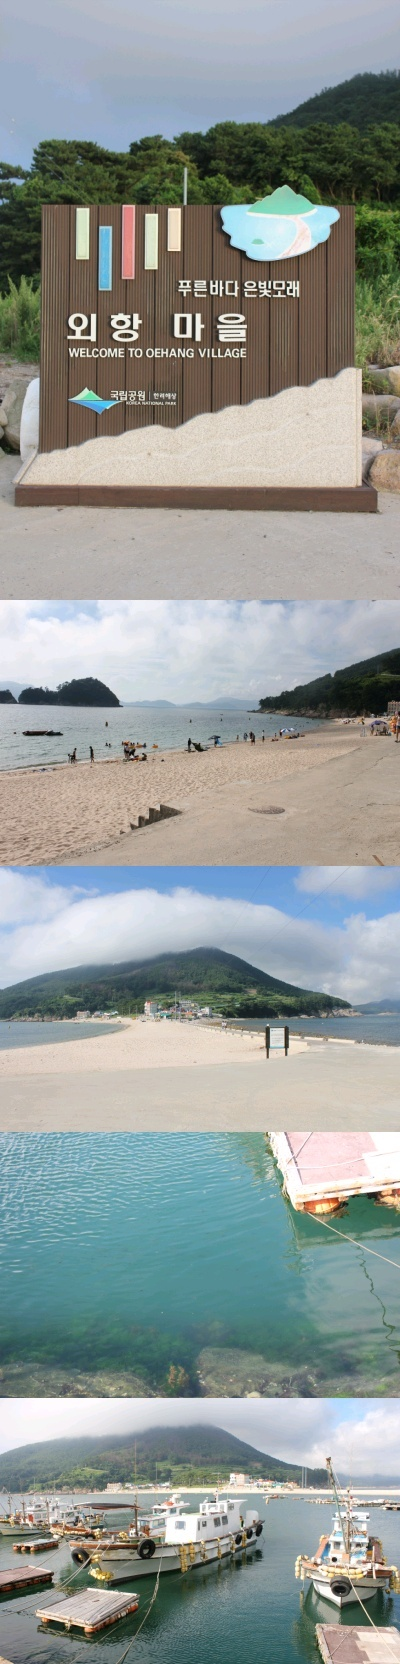 bijindo(island) tongyeong city